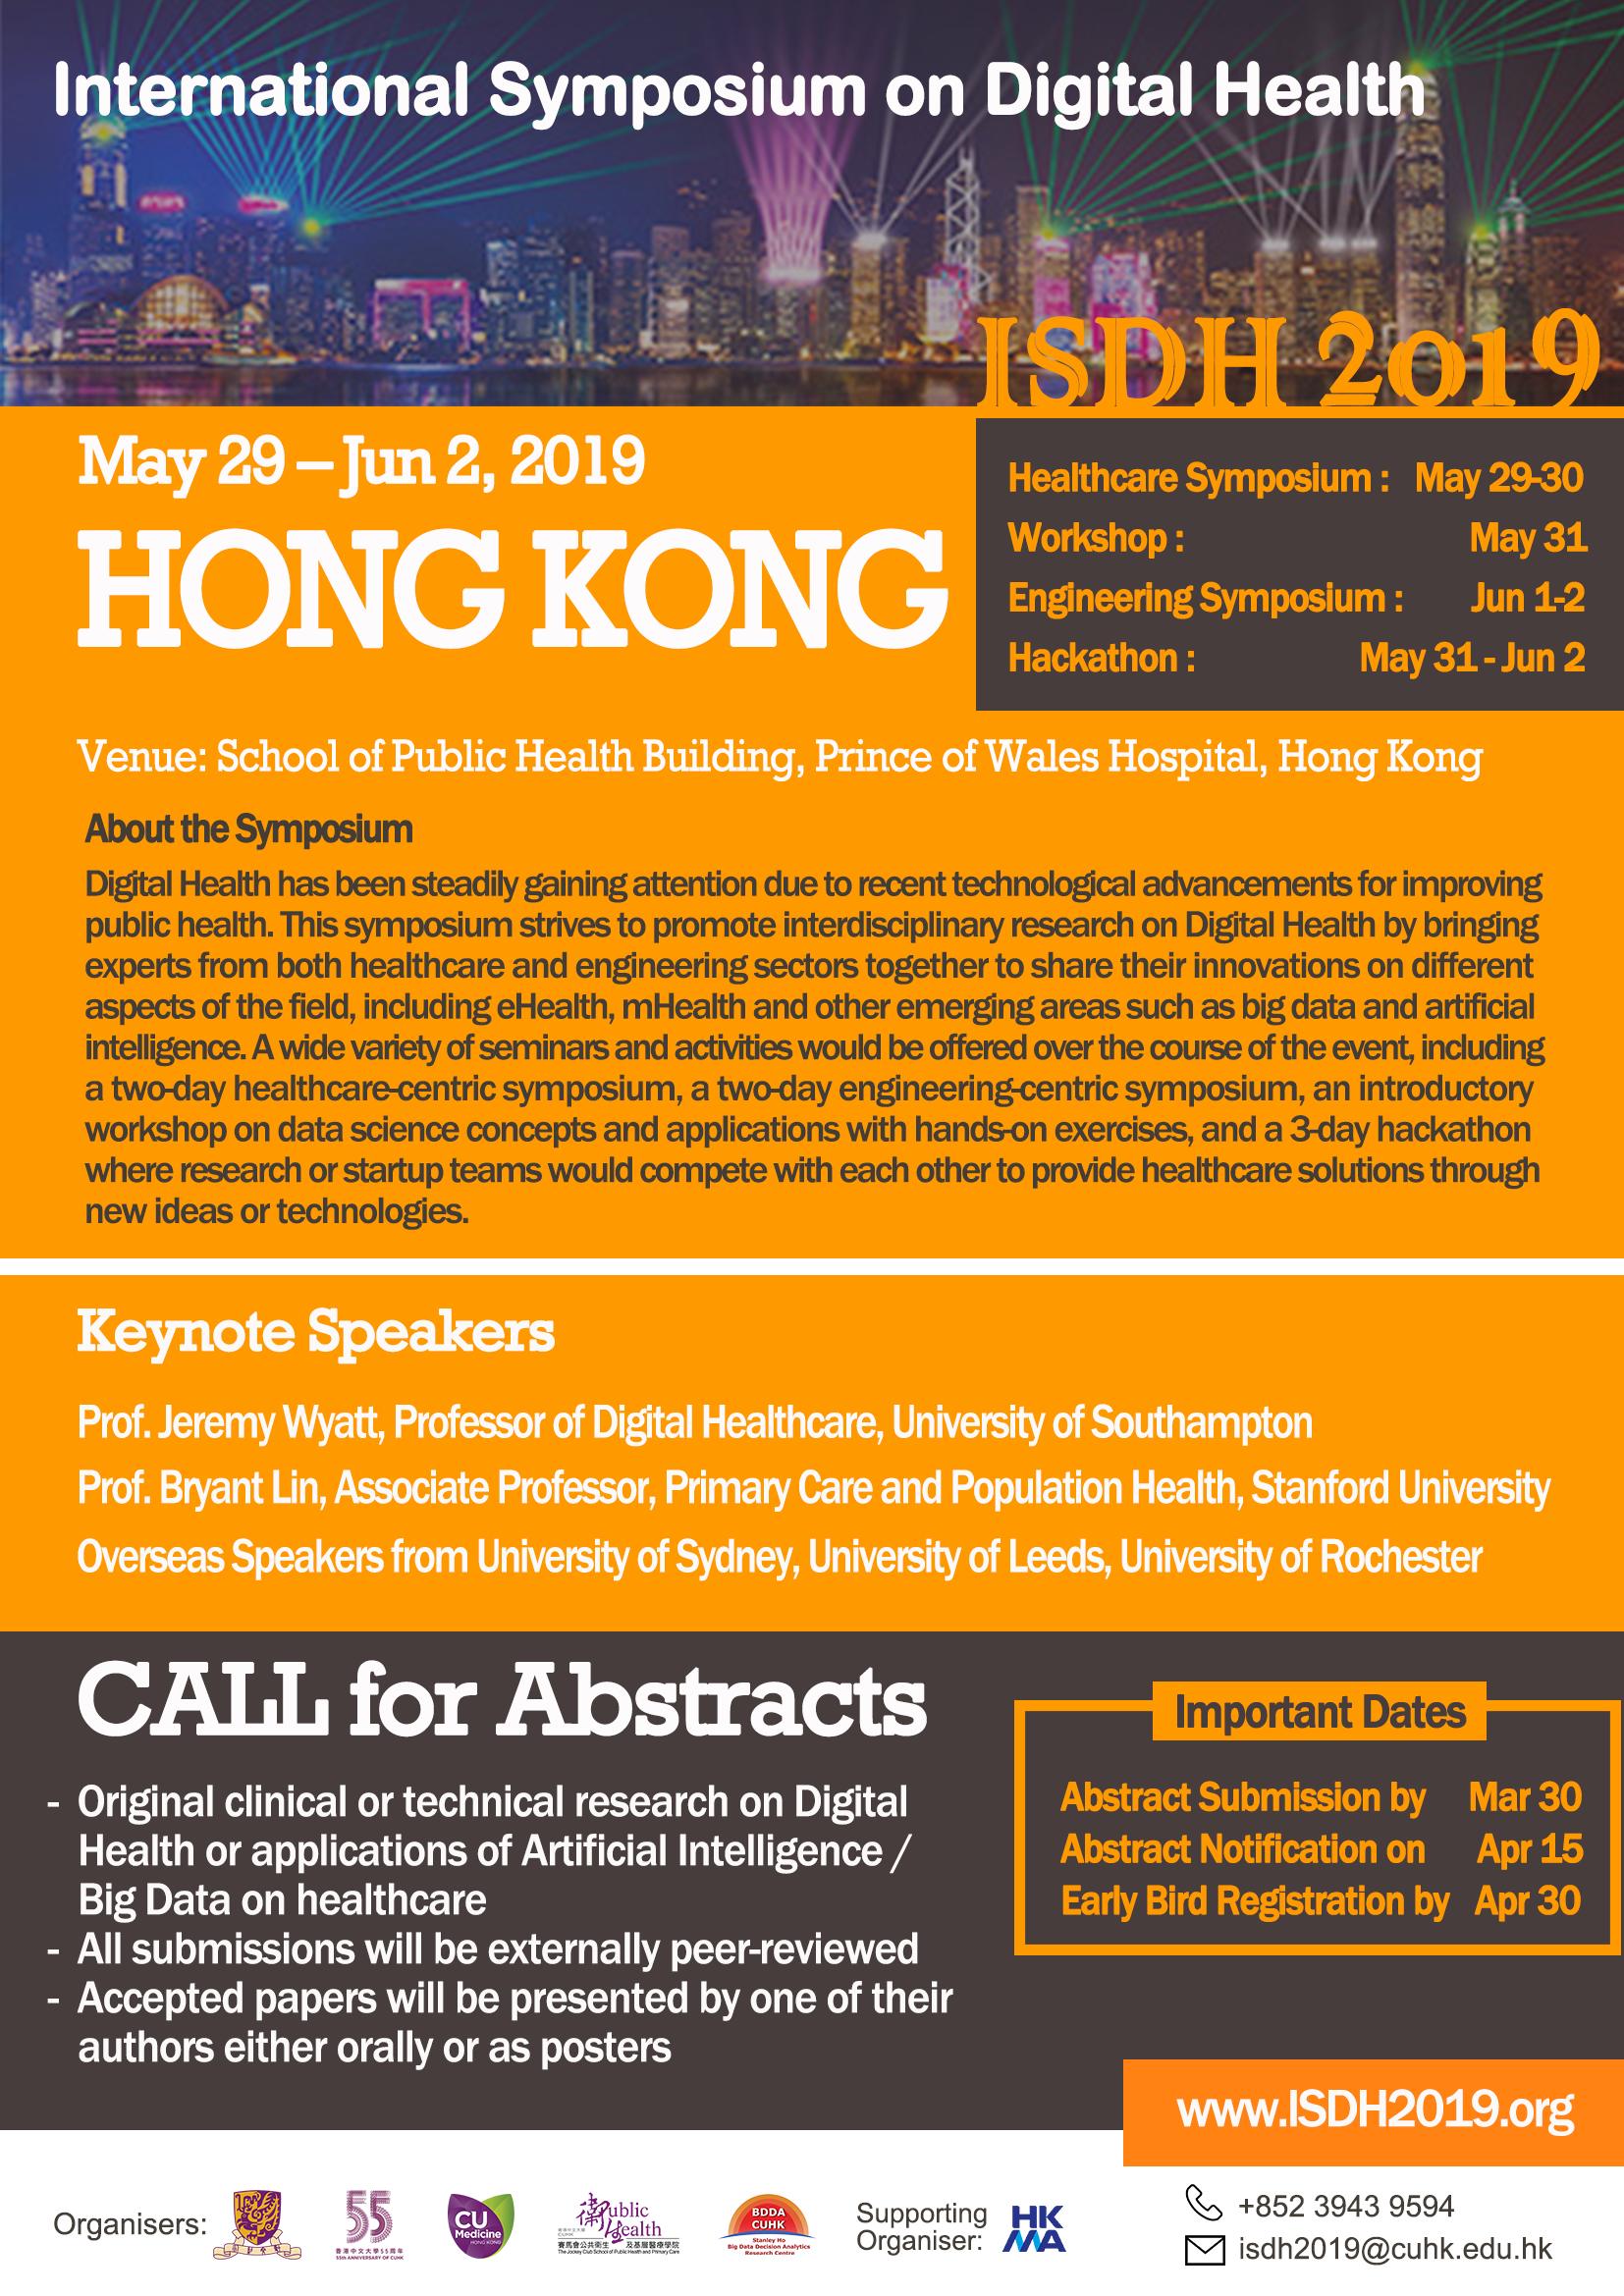 International Symposium on Digital Health 2019 | Hong Kong